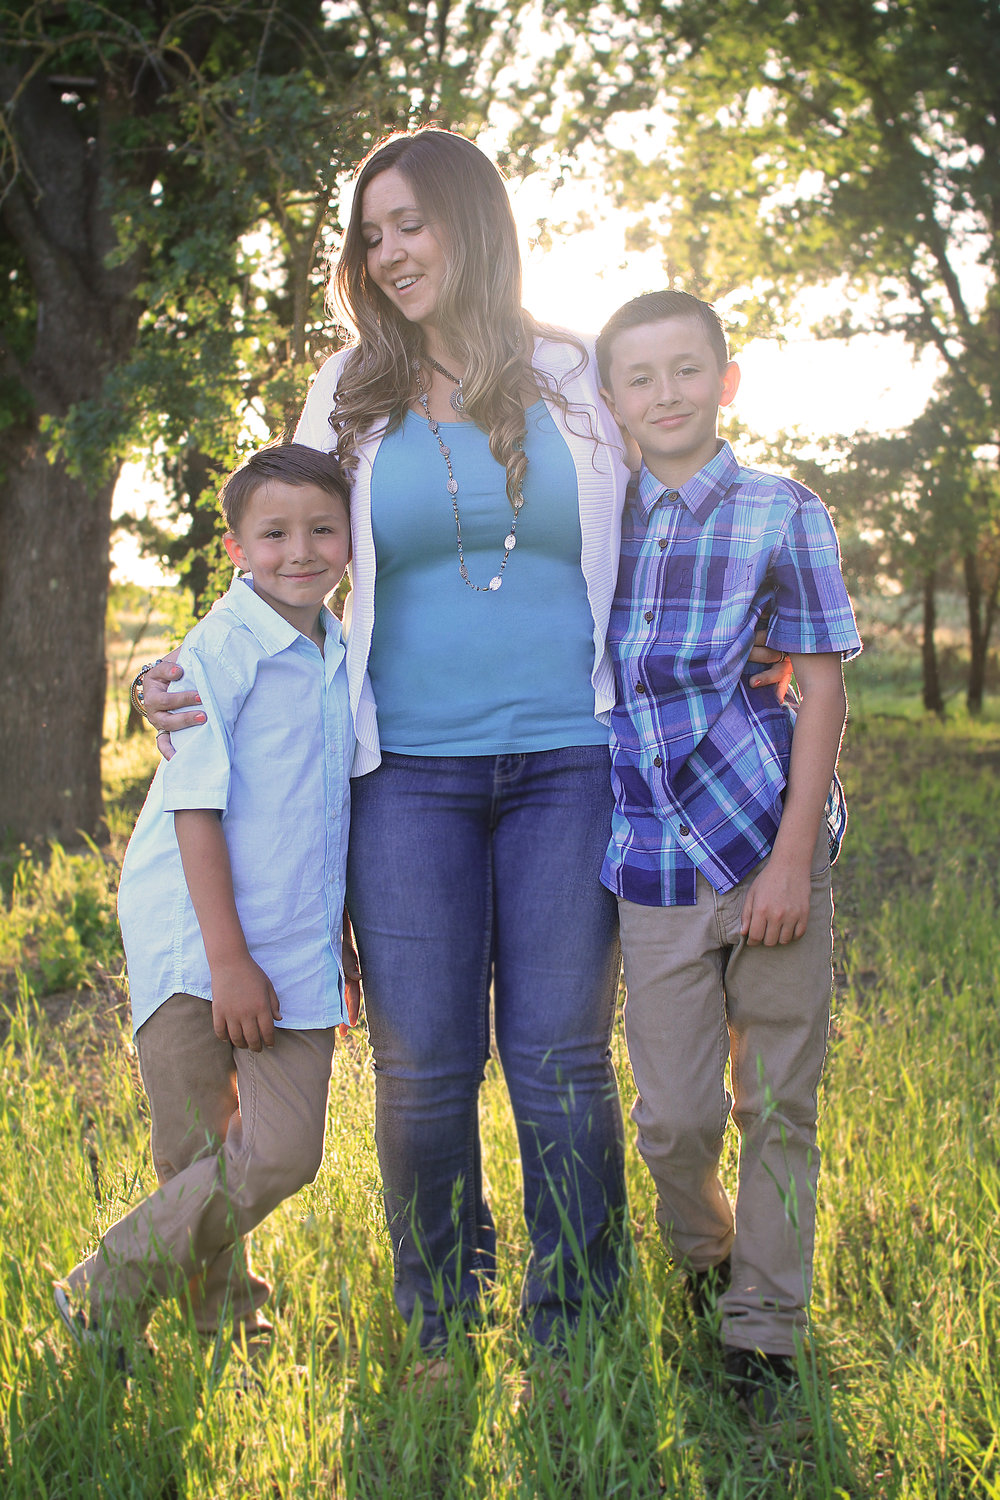 - I had the joy and pleasure of working with Miss Stephanie when she took my family pictures. Extremely friendly and professional, and had no issues whatsoever helping my children feel at ease. The pictures turned out beautifully!! I am looking forward to hiring Stephanie Renae Photography in the future!-Jillian